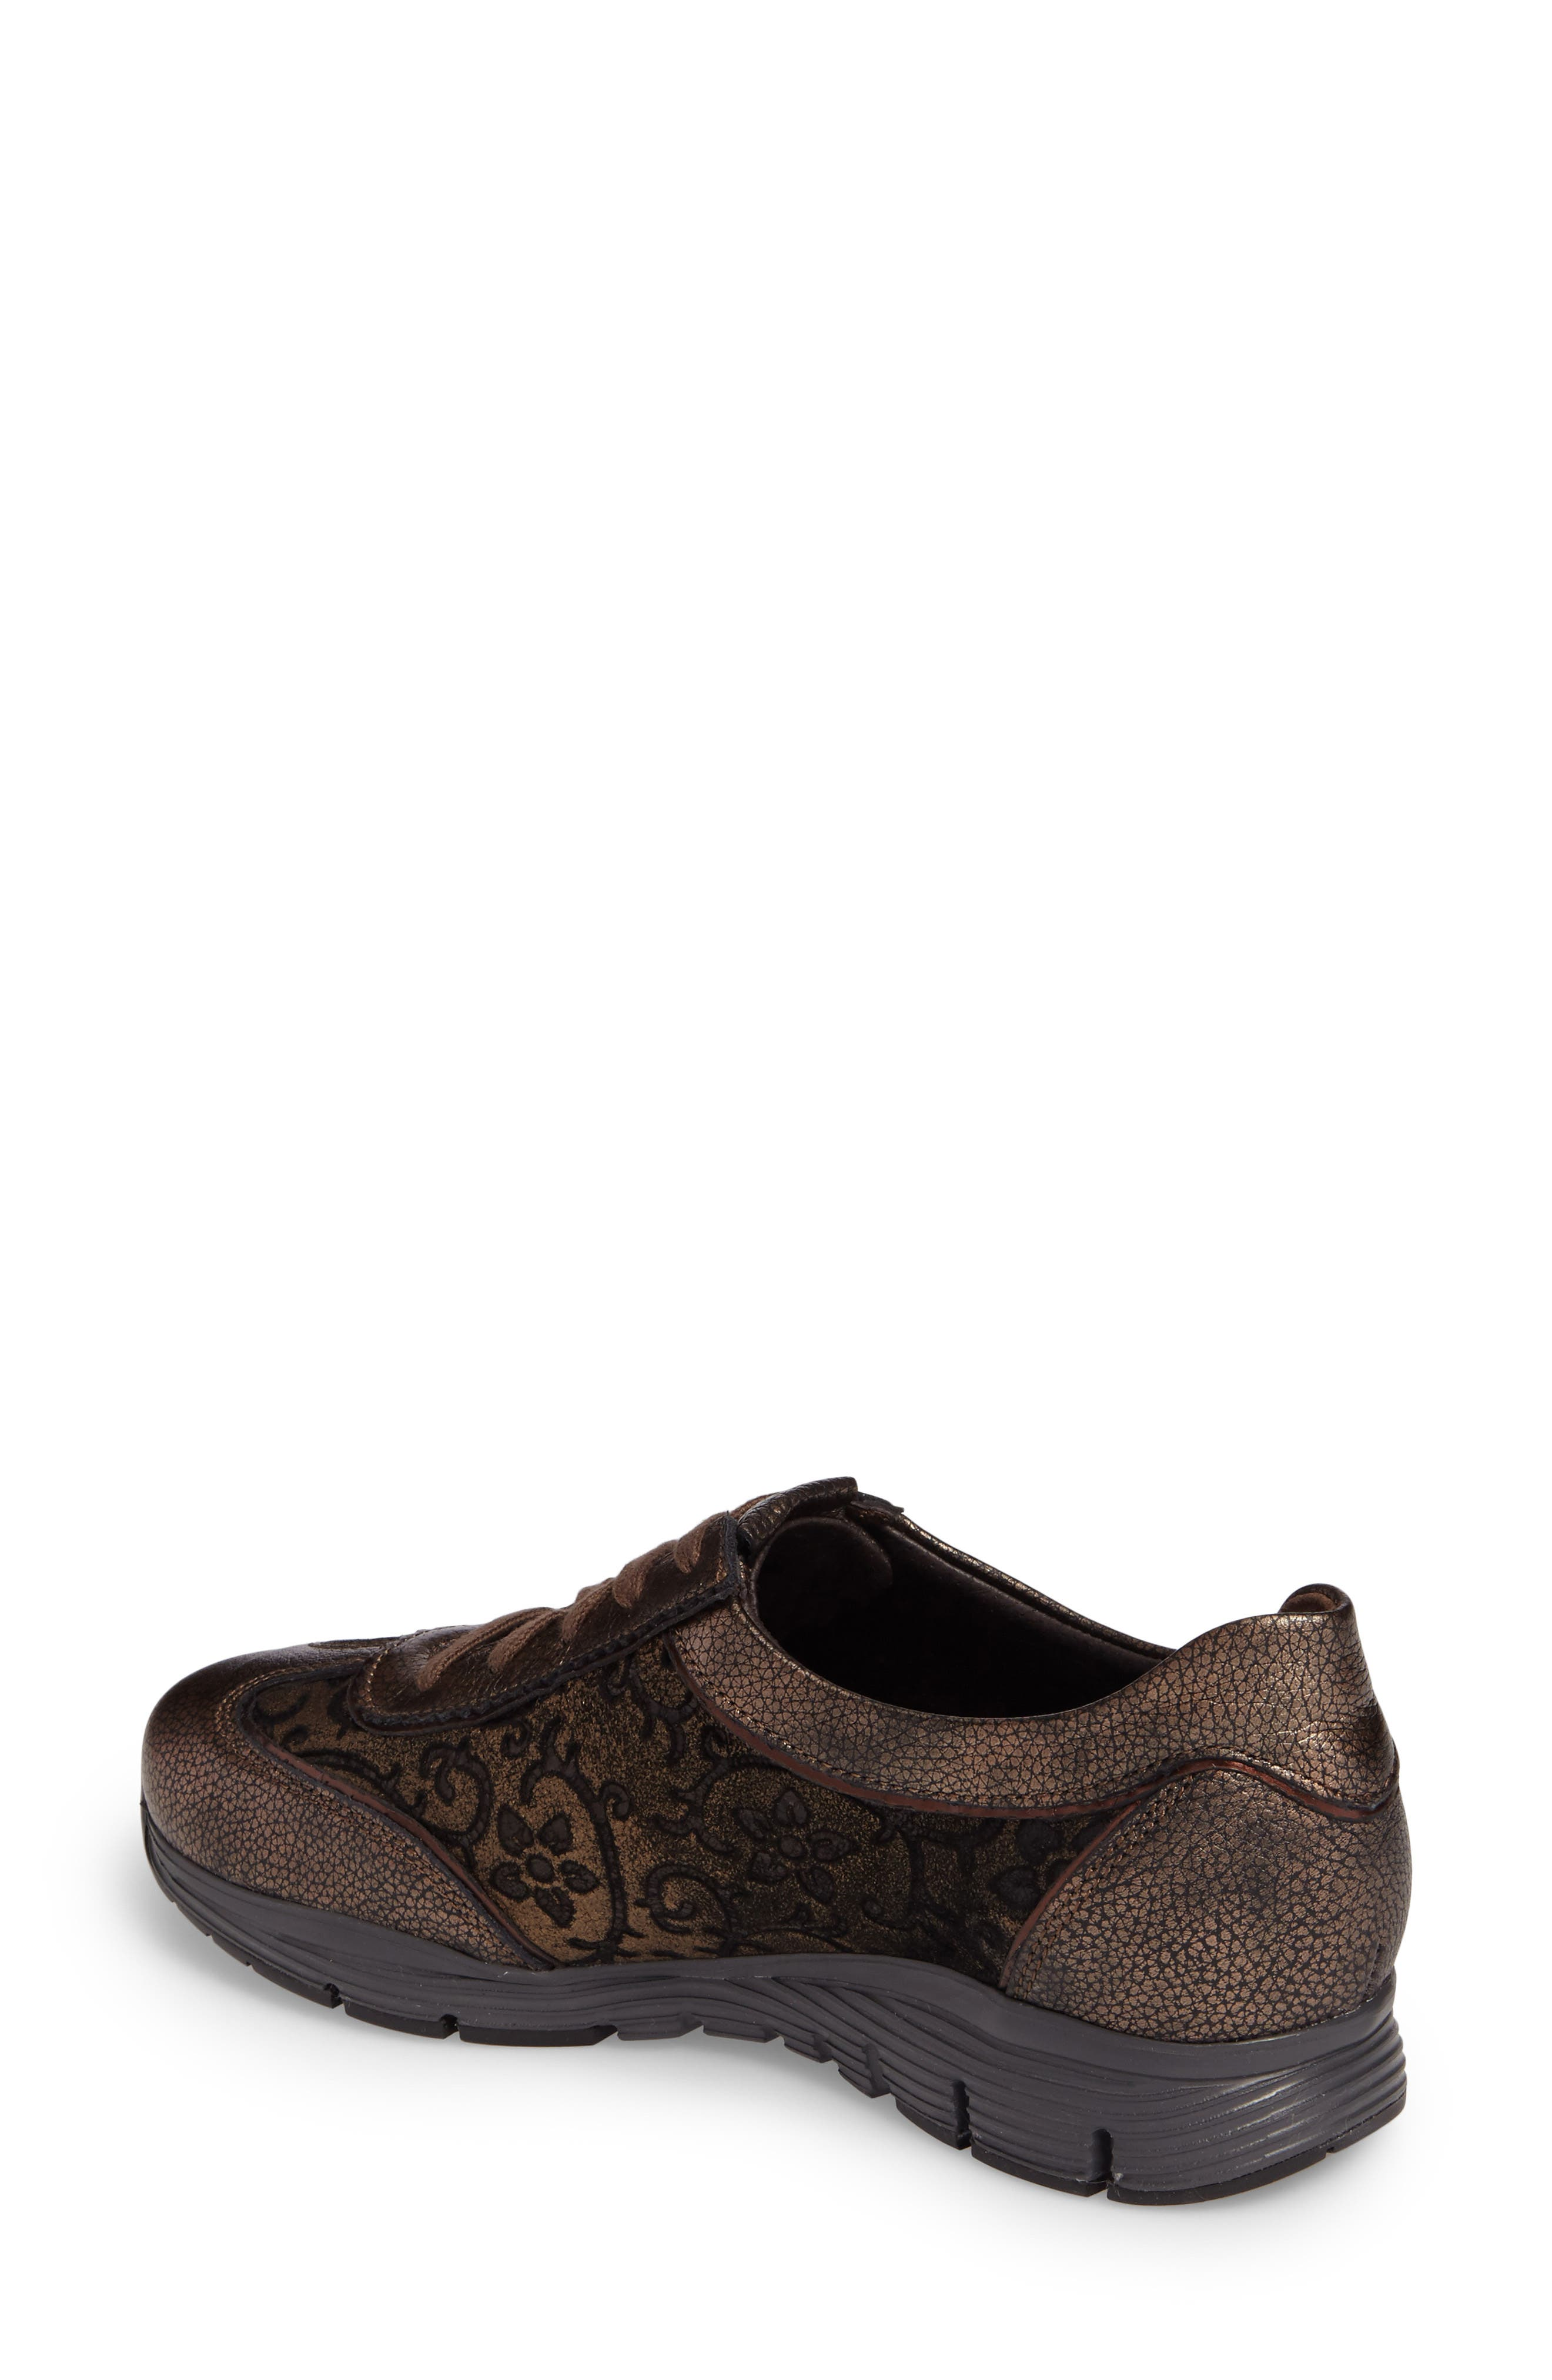 MEPHISTO, 'Yael' Soft-Air Sneaker, Alternate thumbnail 2, color, COPPER LEATHER